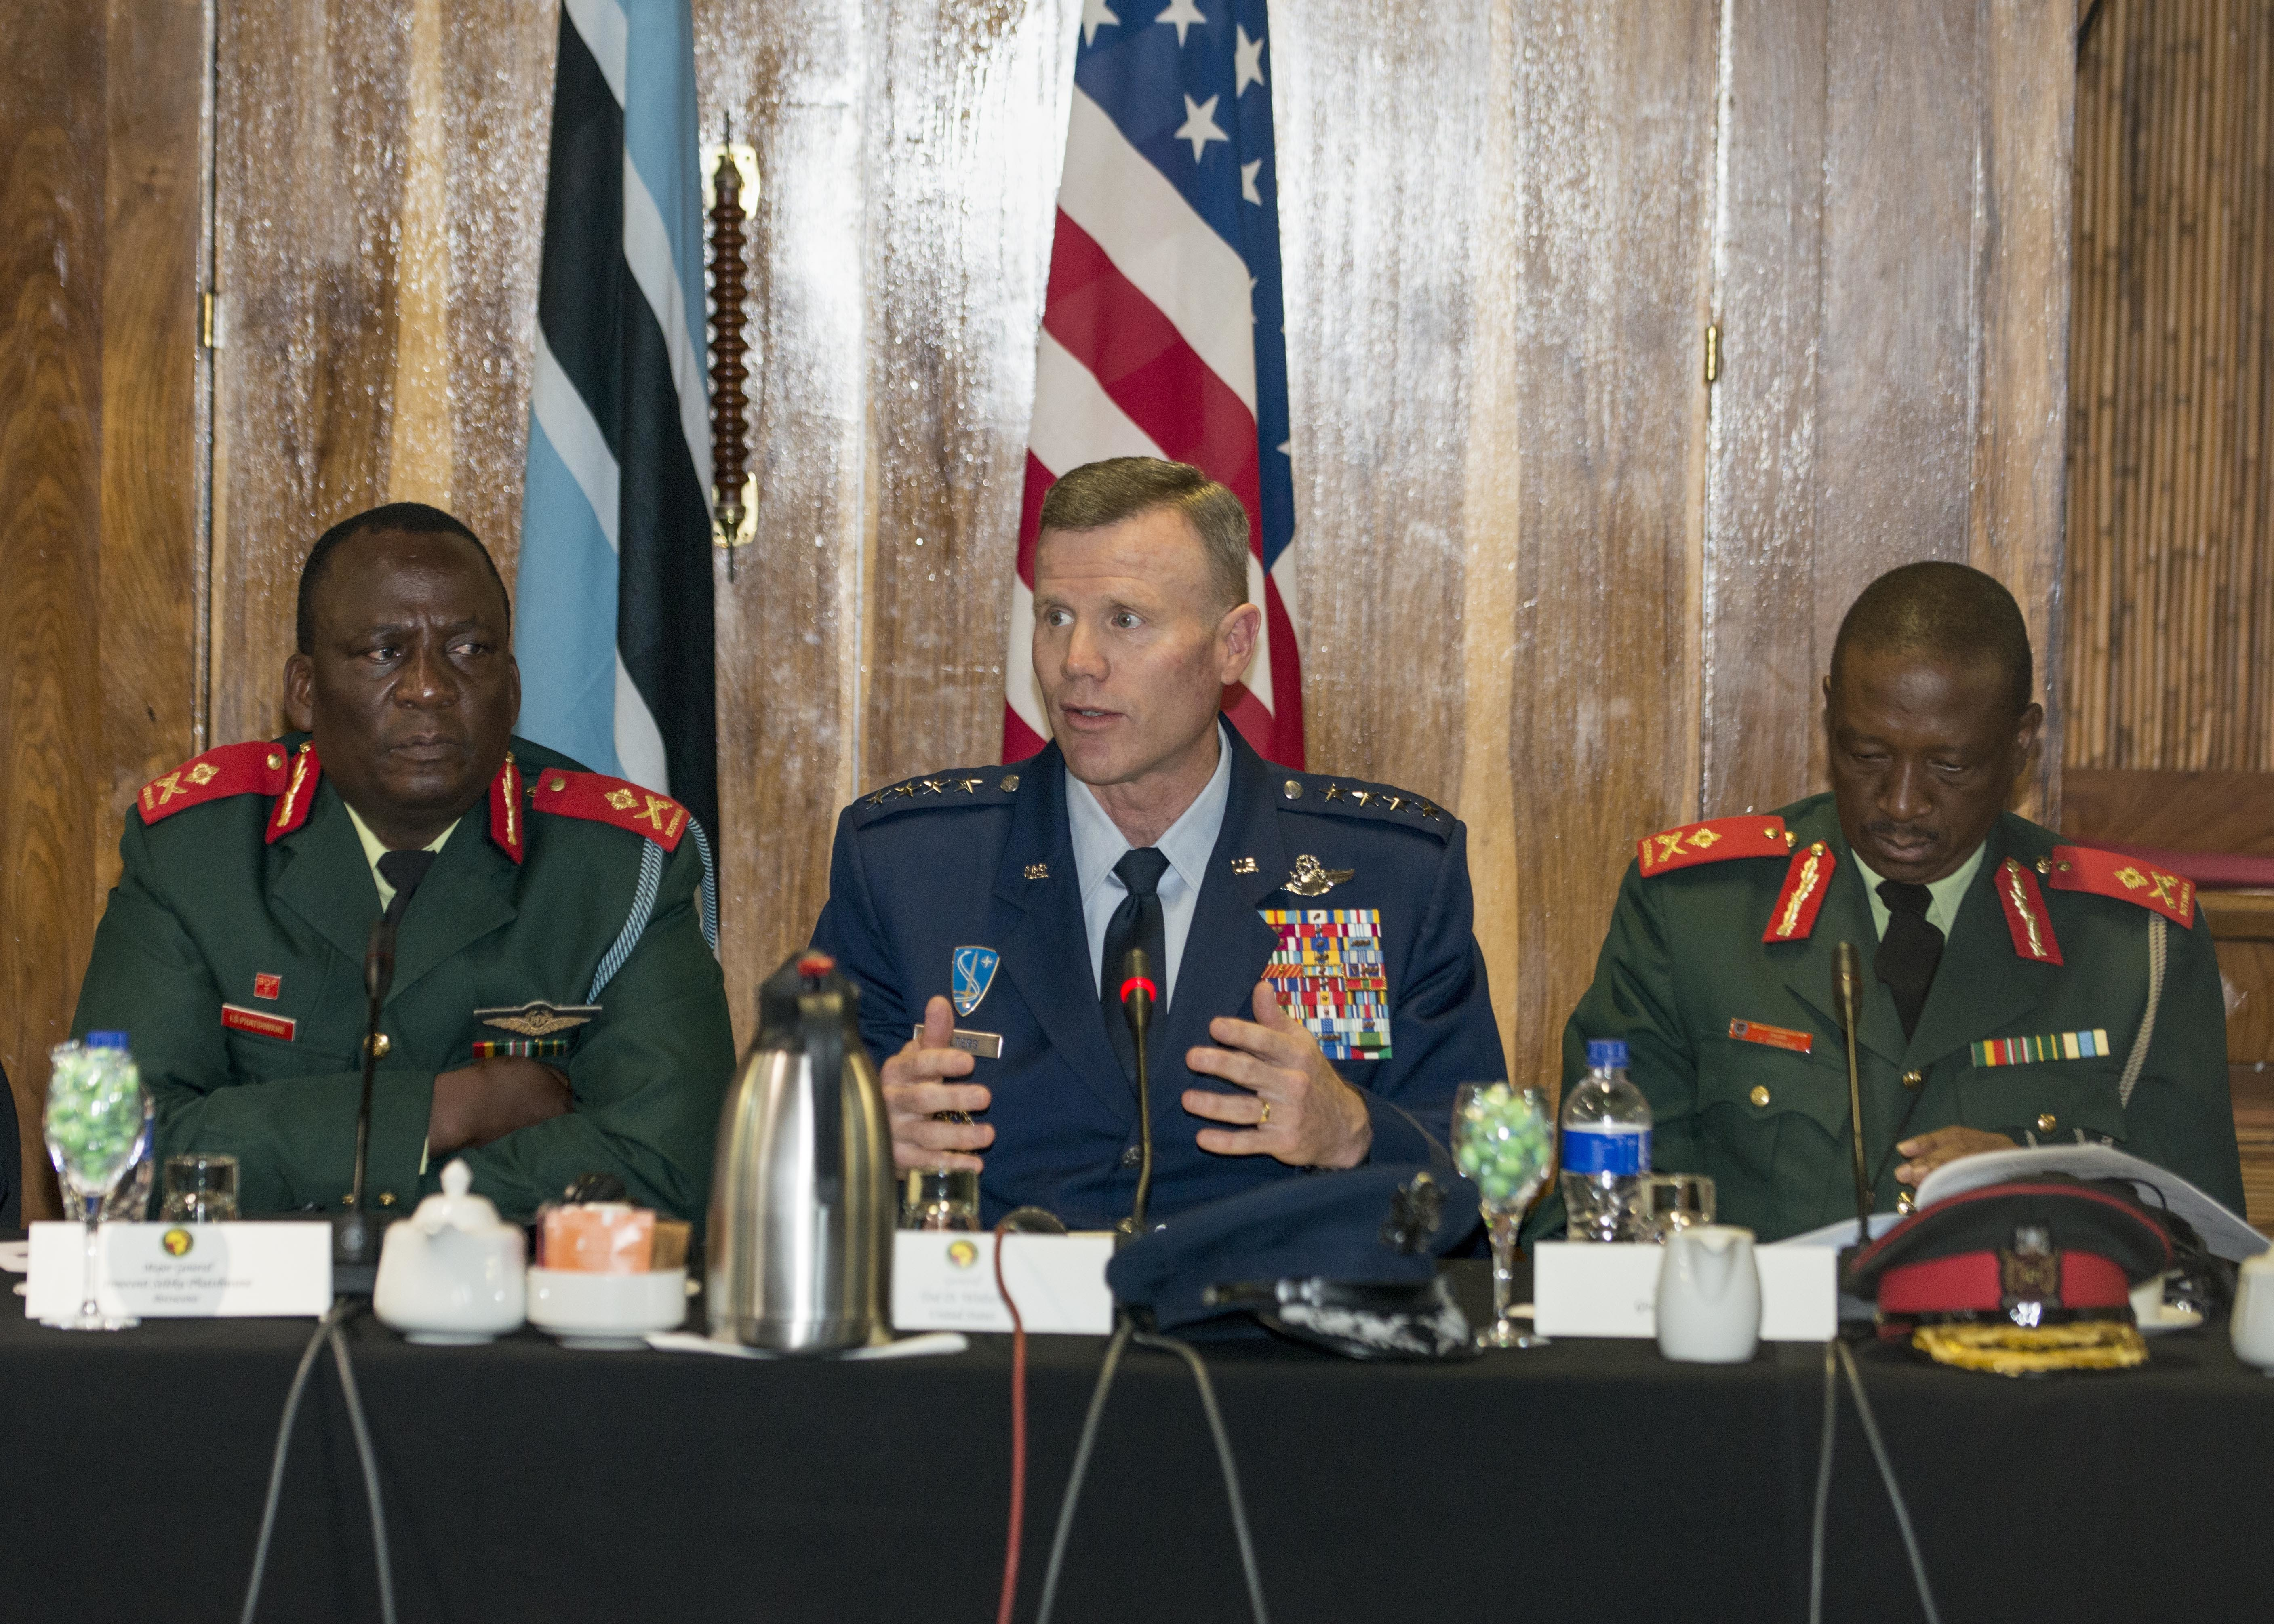 Gen. Tod D. Wolters, U.S. Air Forces in Europe and Air Forces Africa commander, speaks during the opening ceremony of the 2017 African Air Chiefs Symposium in Kasane, Botswana on May 16, 2017. The purpose of the symposium is to create a forum for air chiefs from across the African continent to come together to address regional and continental issues, enhance relationships and increase cooperation. This year's conference will focus on the training aspect of force development. (U.S. Air Force photo by Staff Sgt. Krystal Ardrey/Released)